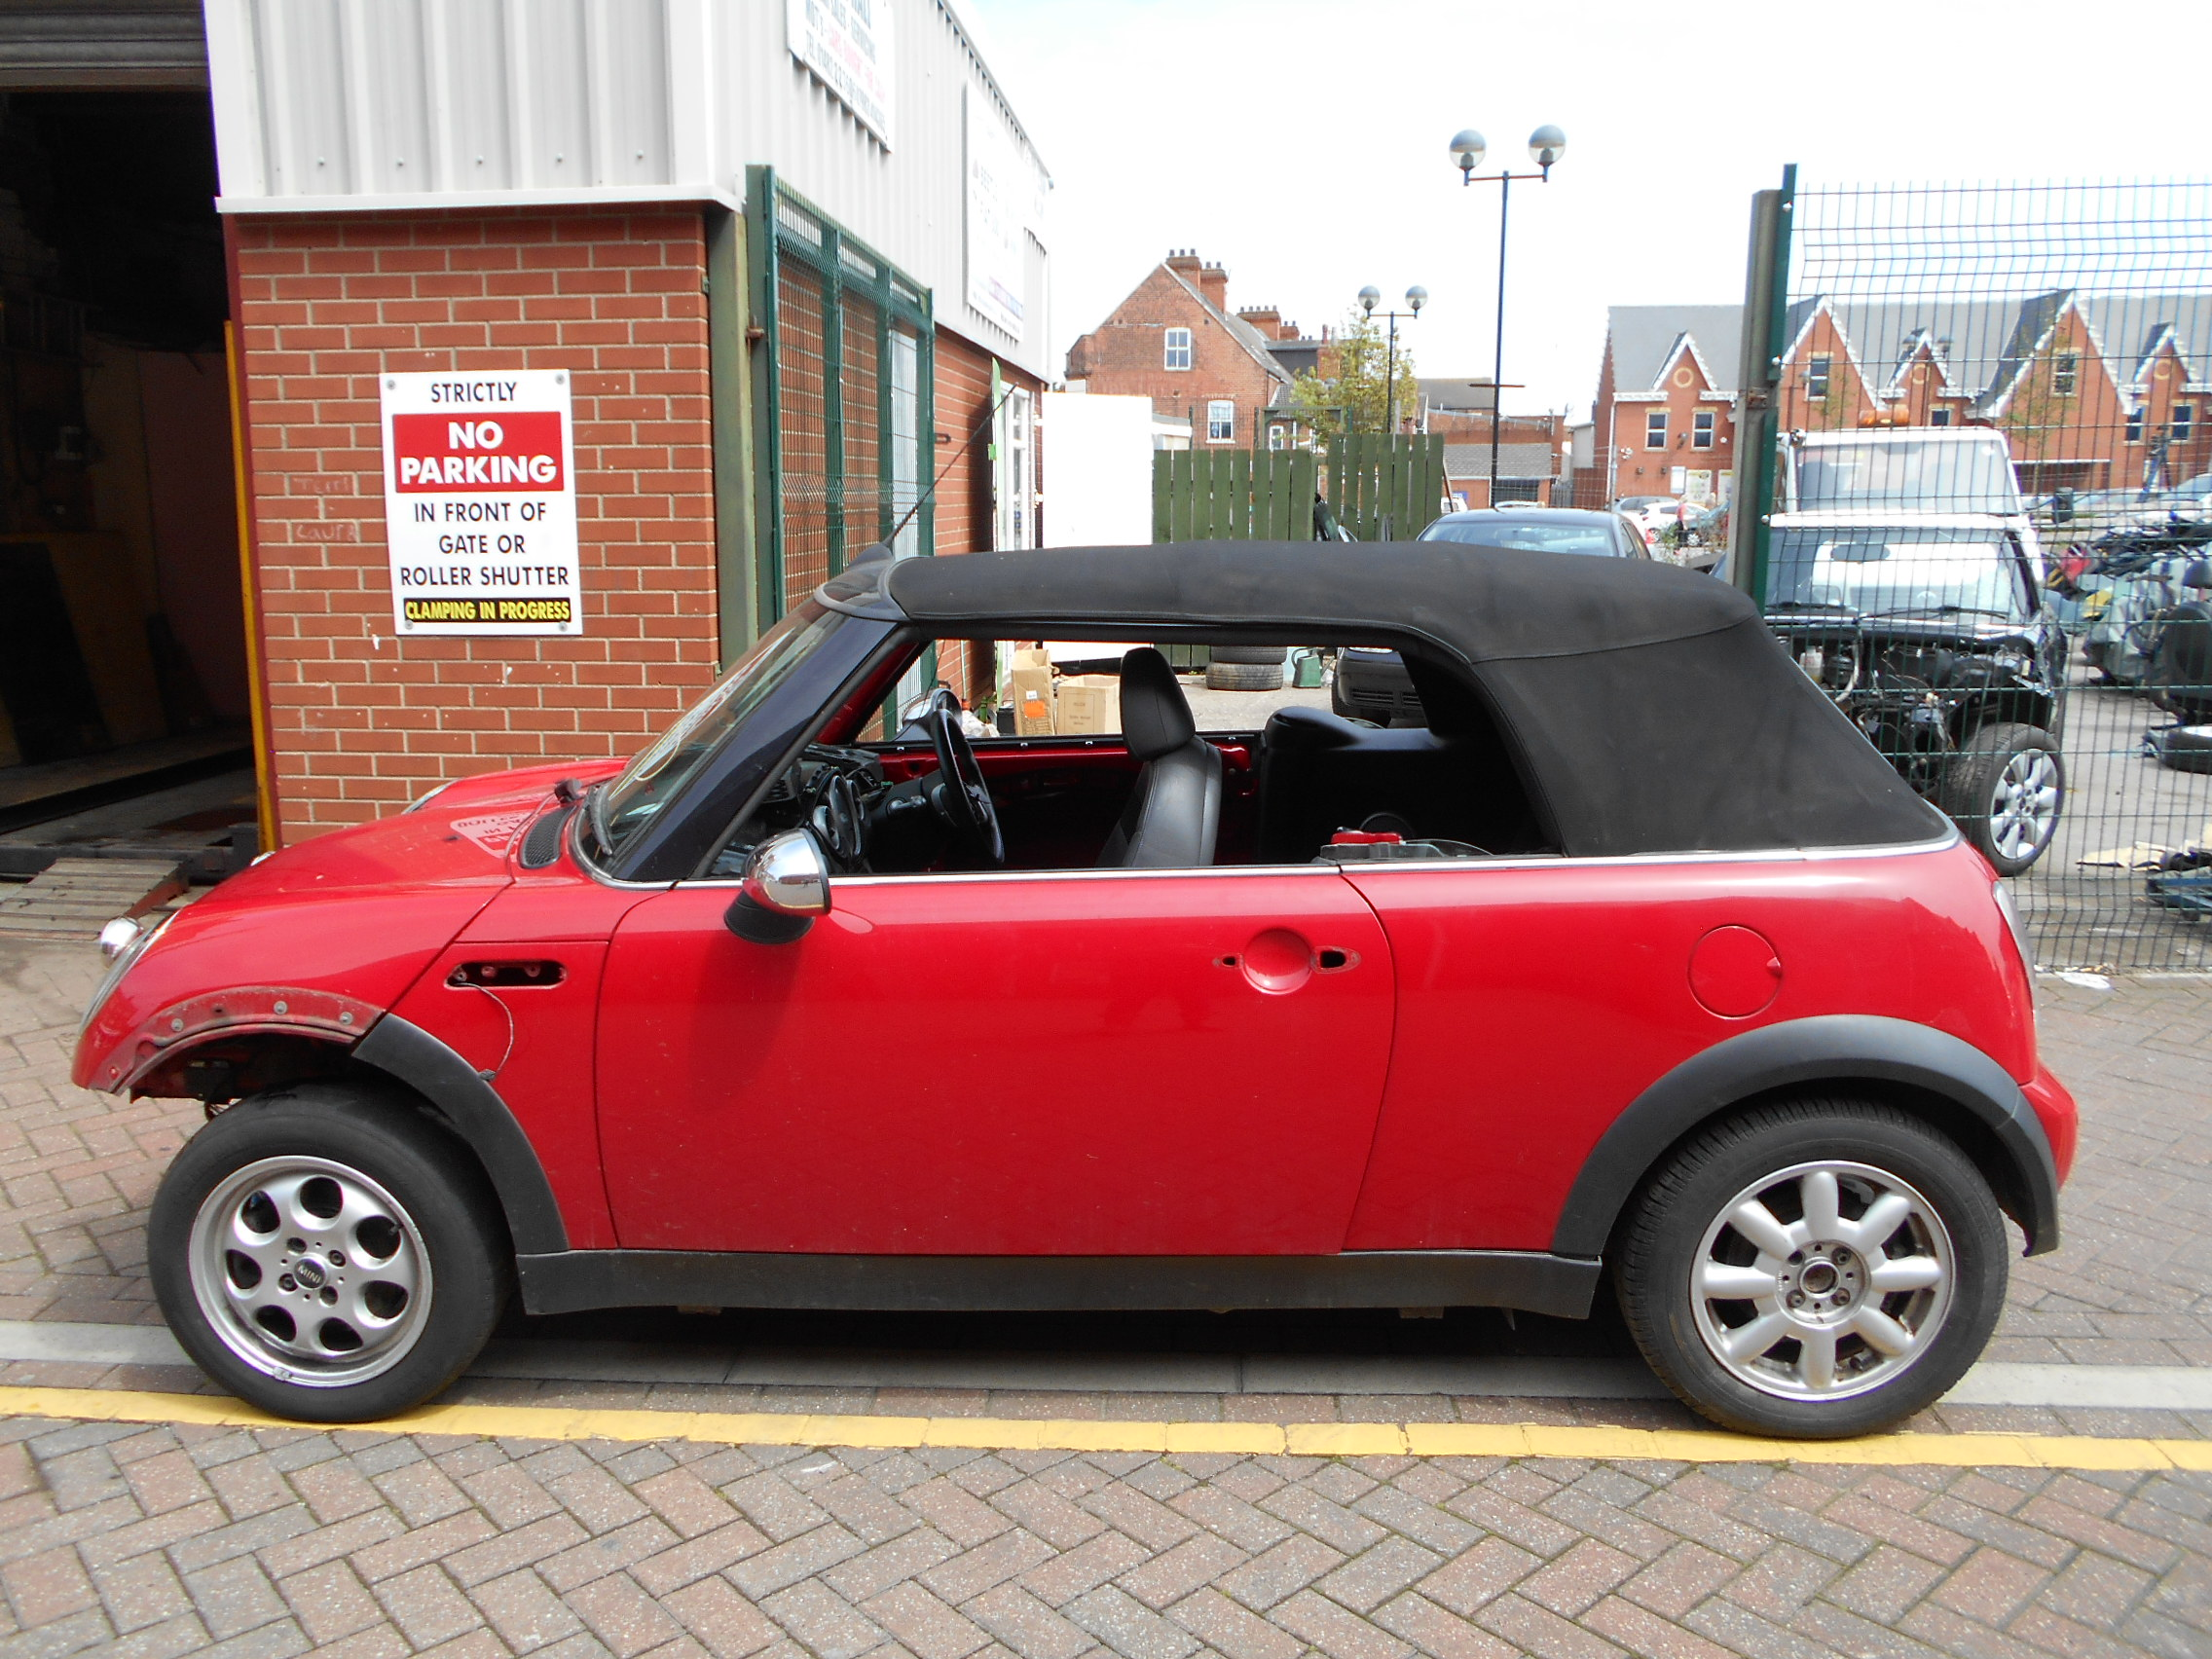 04 Chilli Red 1.6 BMW Mini Convertible - 4